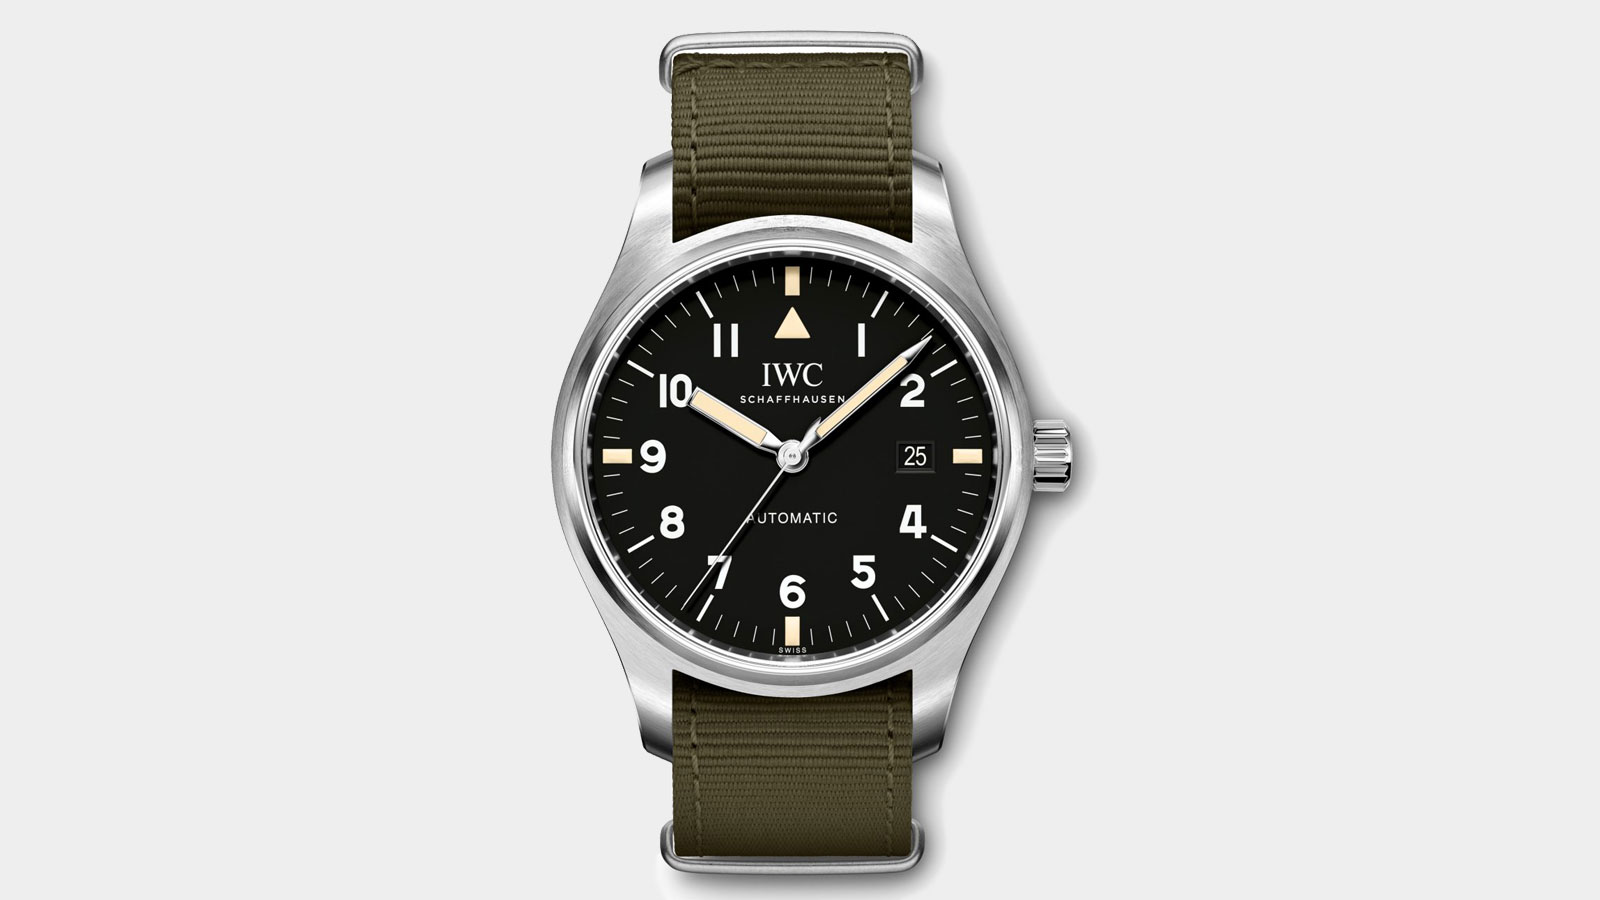 iwc pilot watch mark xviii edition